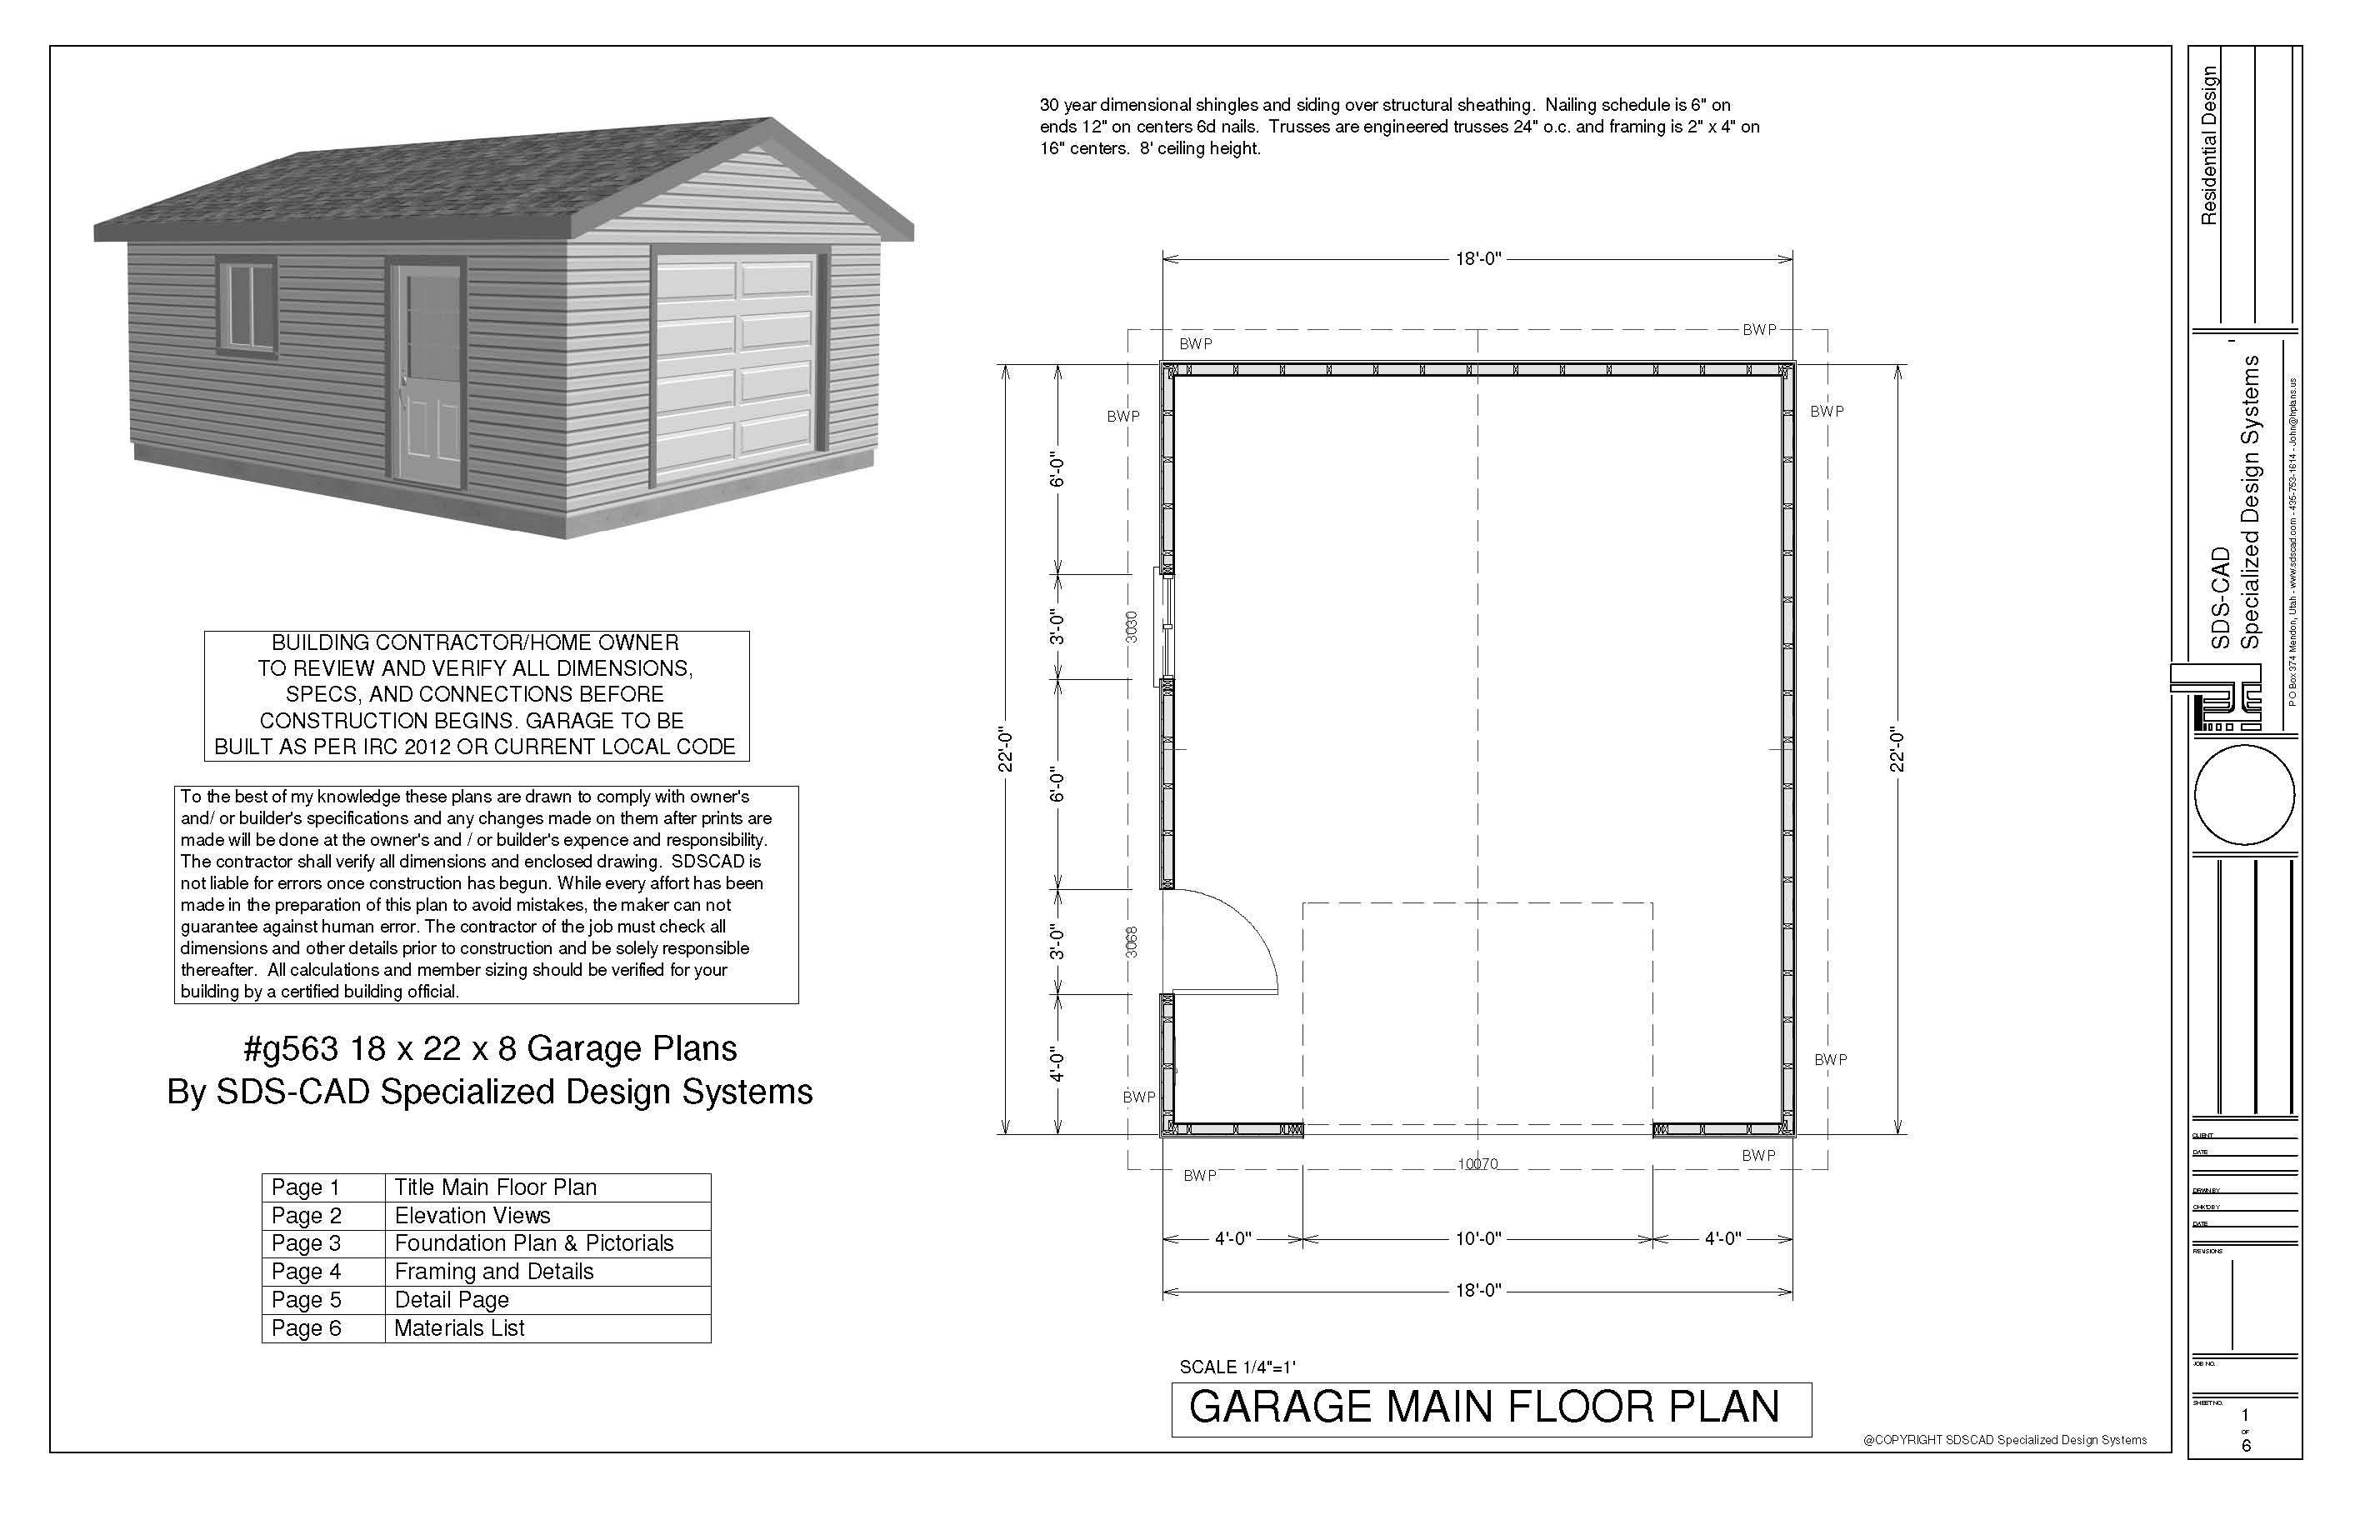 Garage plans sds plans for Floor plan blueprints free